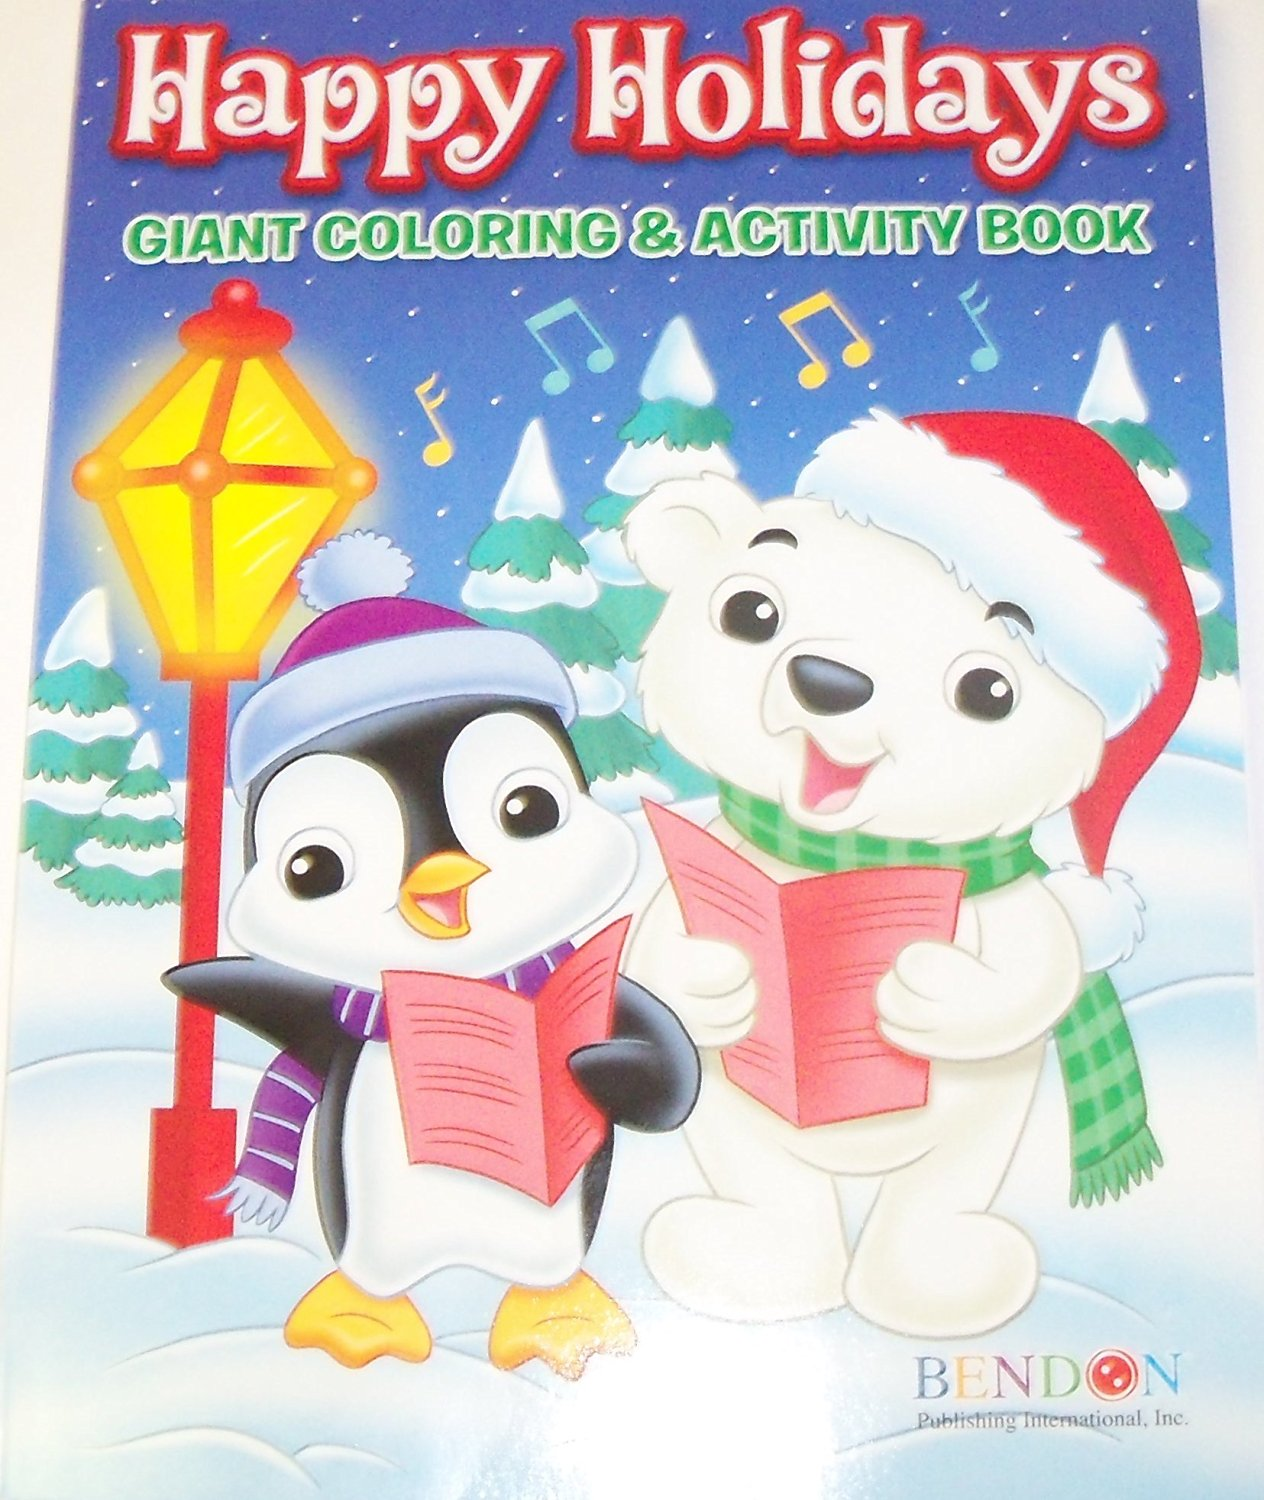 Happy Holidays 160 Page Giant Coloring and Activity Book ~ Christmas Edition (Animals Caroling)